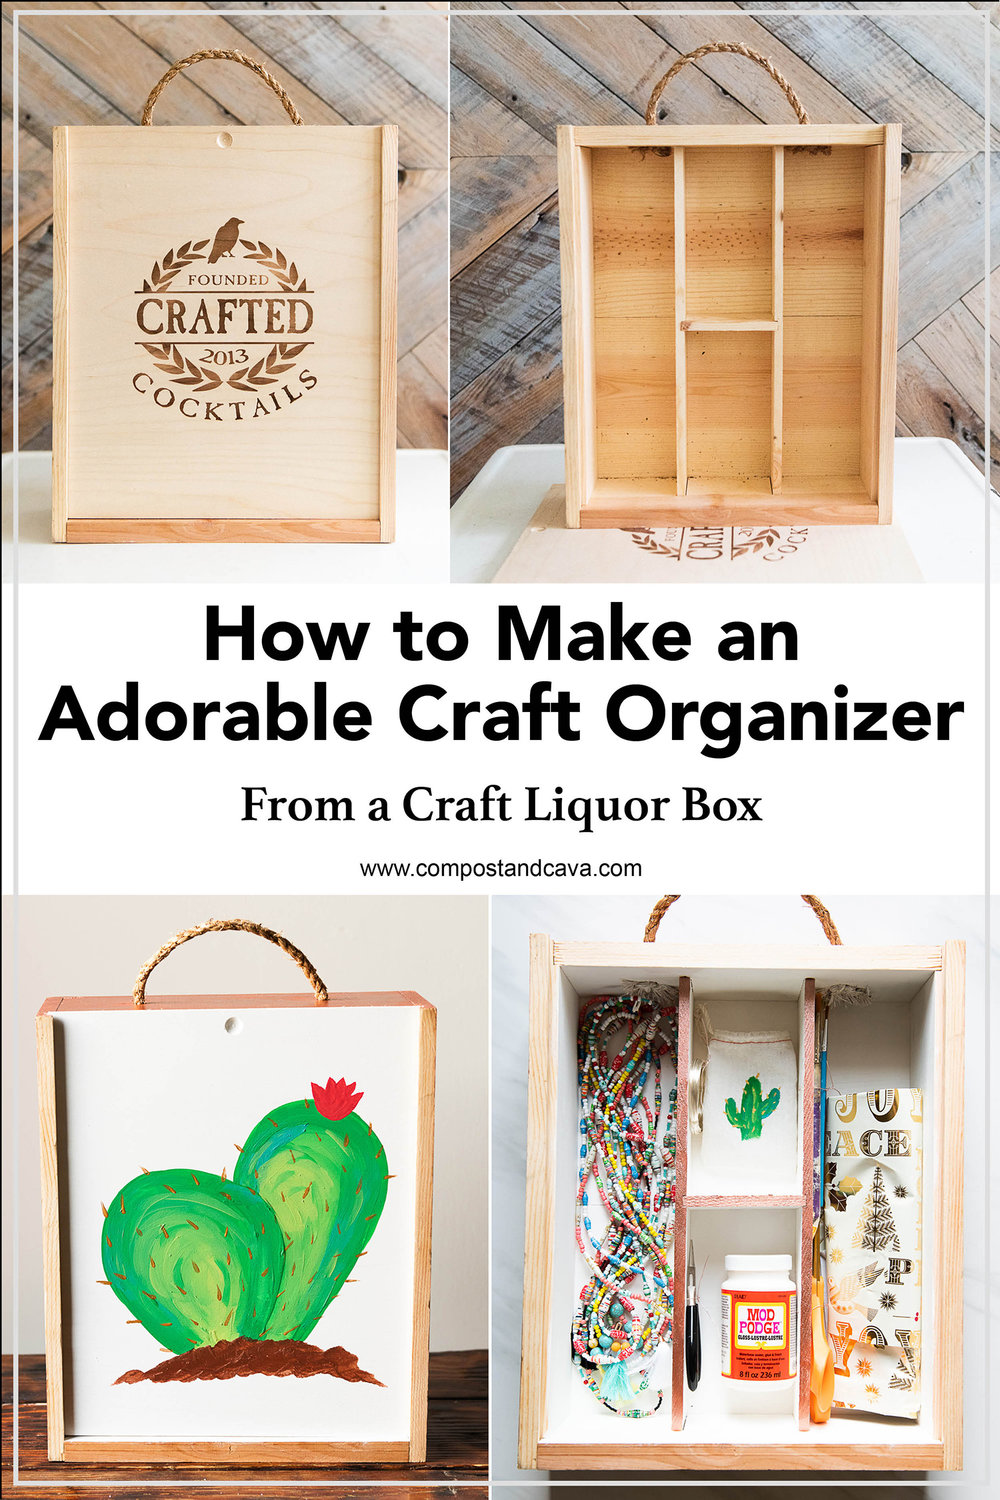 How to Upcycle a Craft Liquor Box into an Adorable Craft Organizer